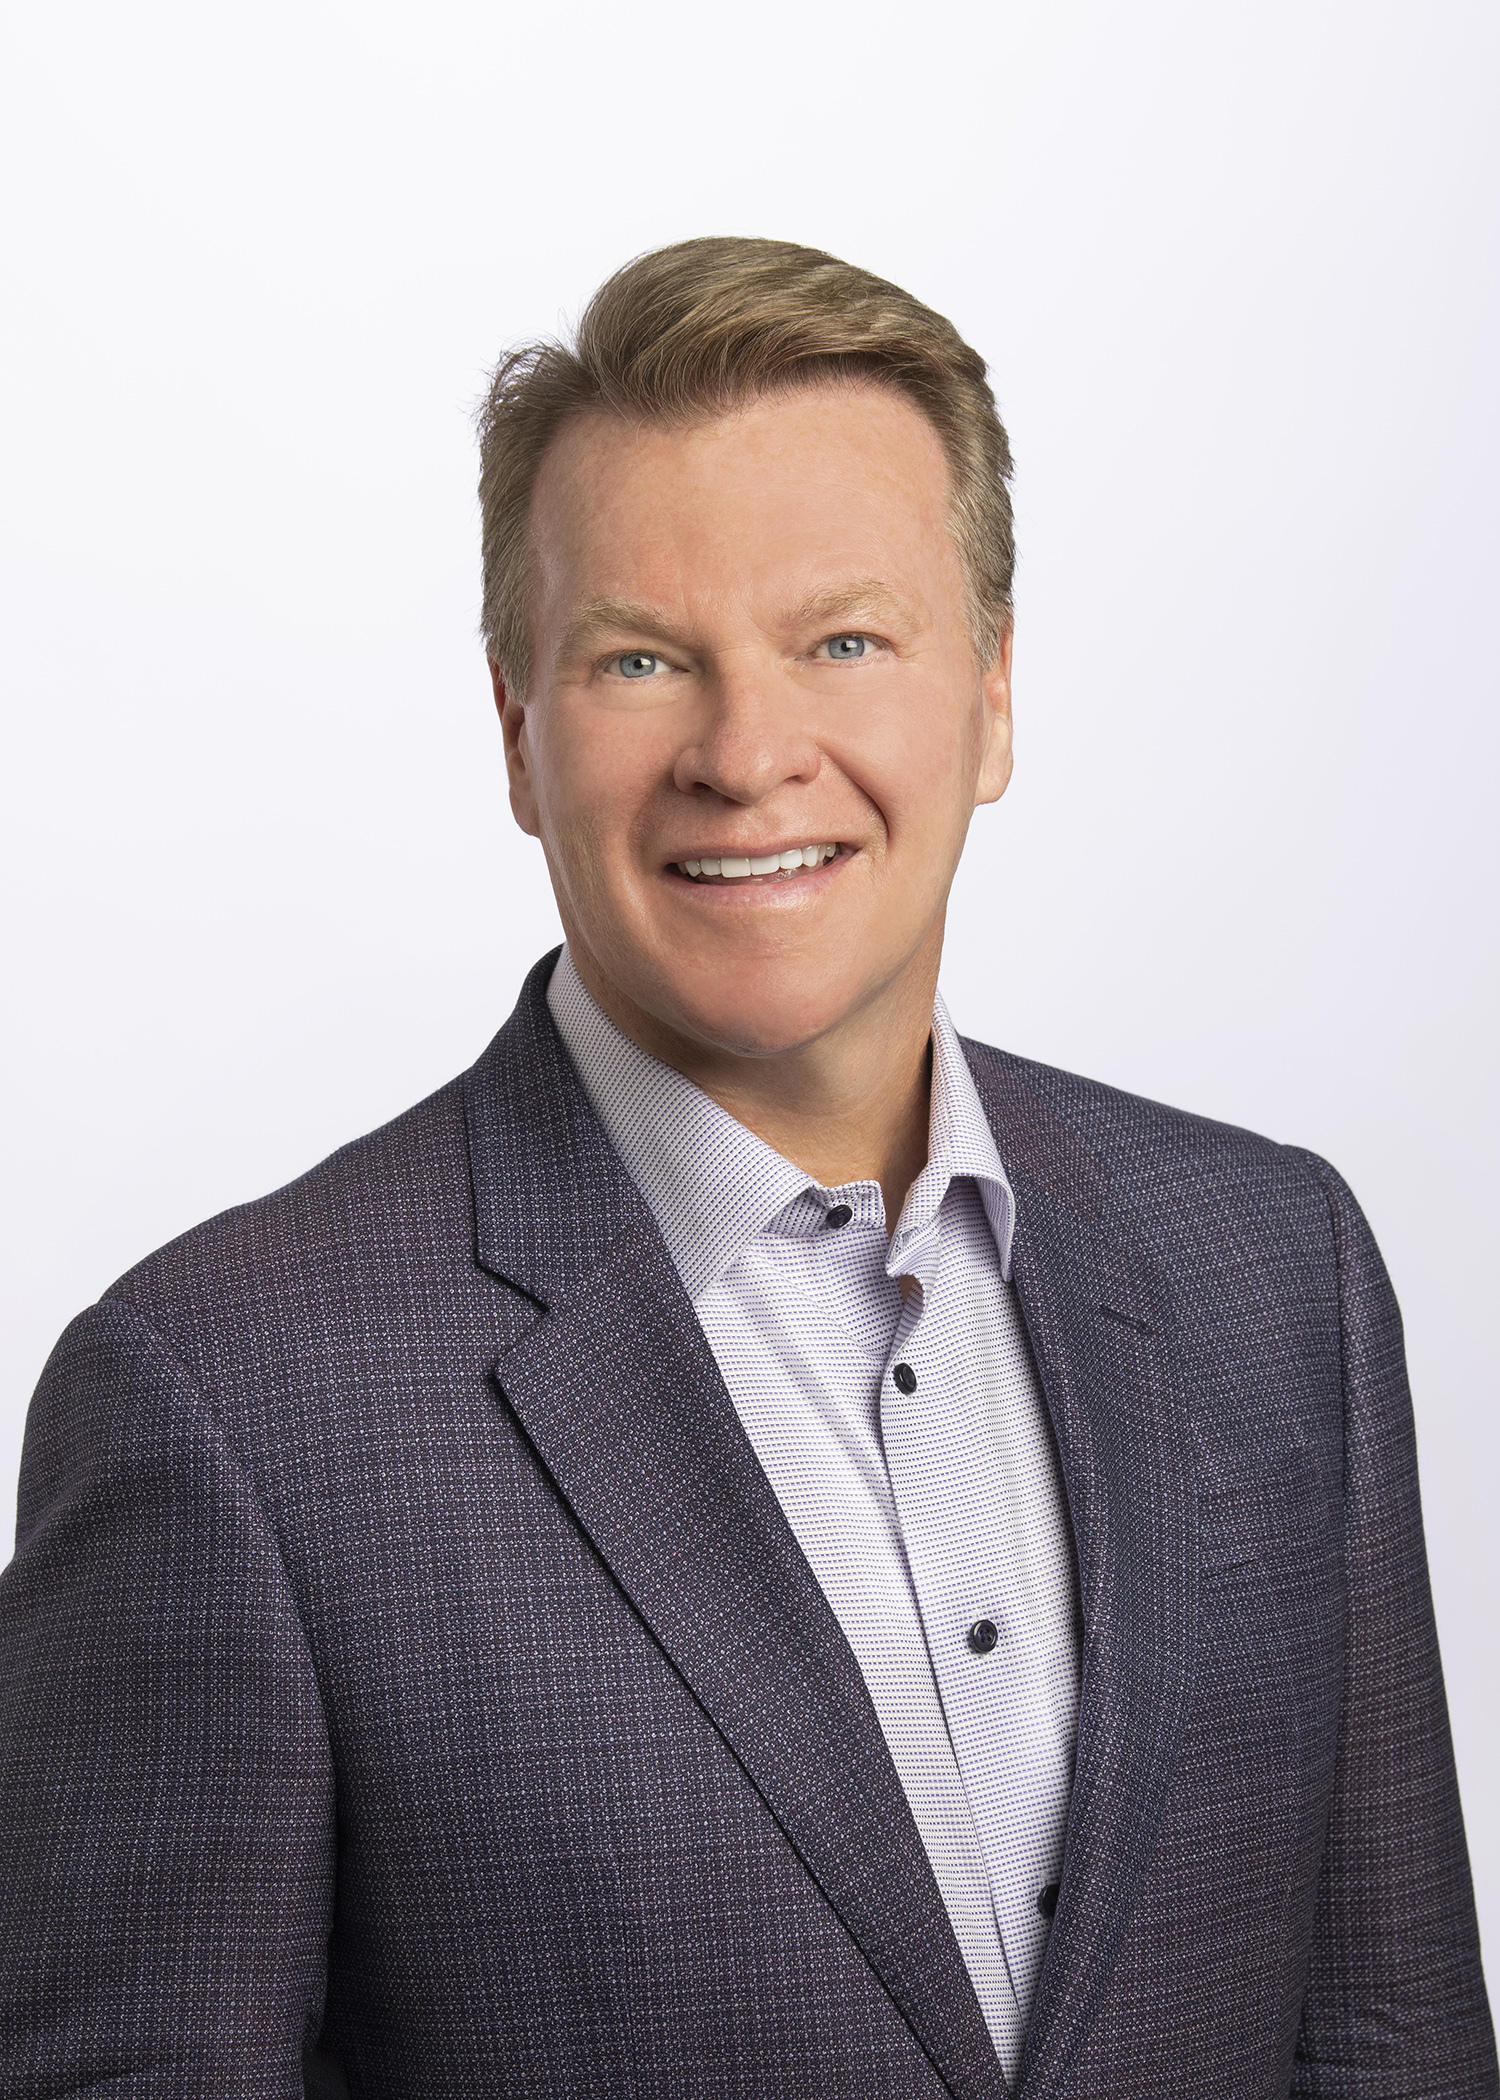 Cerner/Livongo Exec Joins Quantum Health, UPMC, Other Executive Appointments